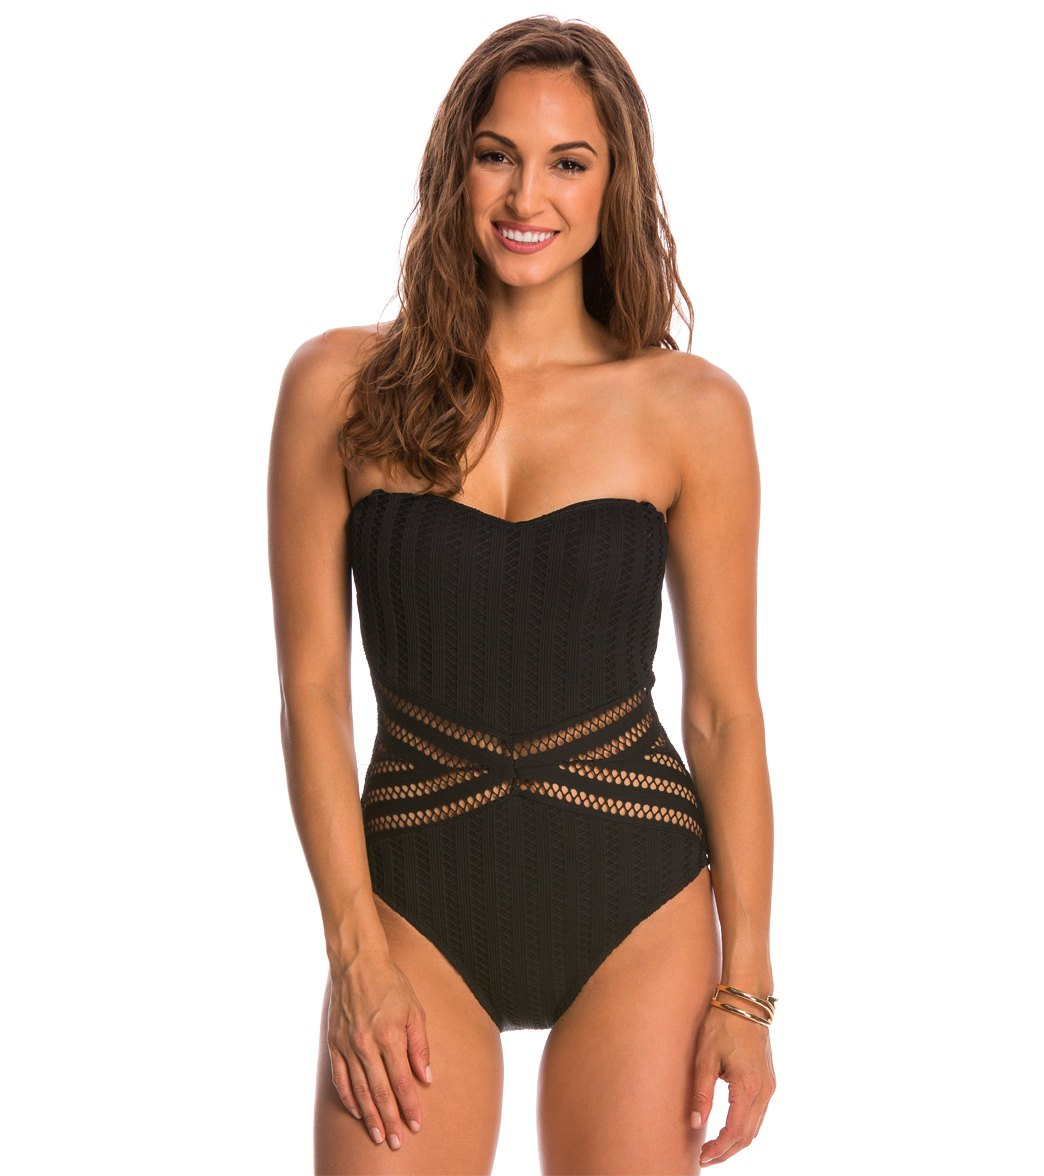 Kenneth Cole Swimwear Tough Luxe Bandeau One Piece Swimsuit at  SwimOutlet.com - Free Shipping